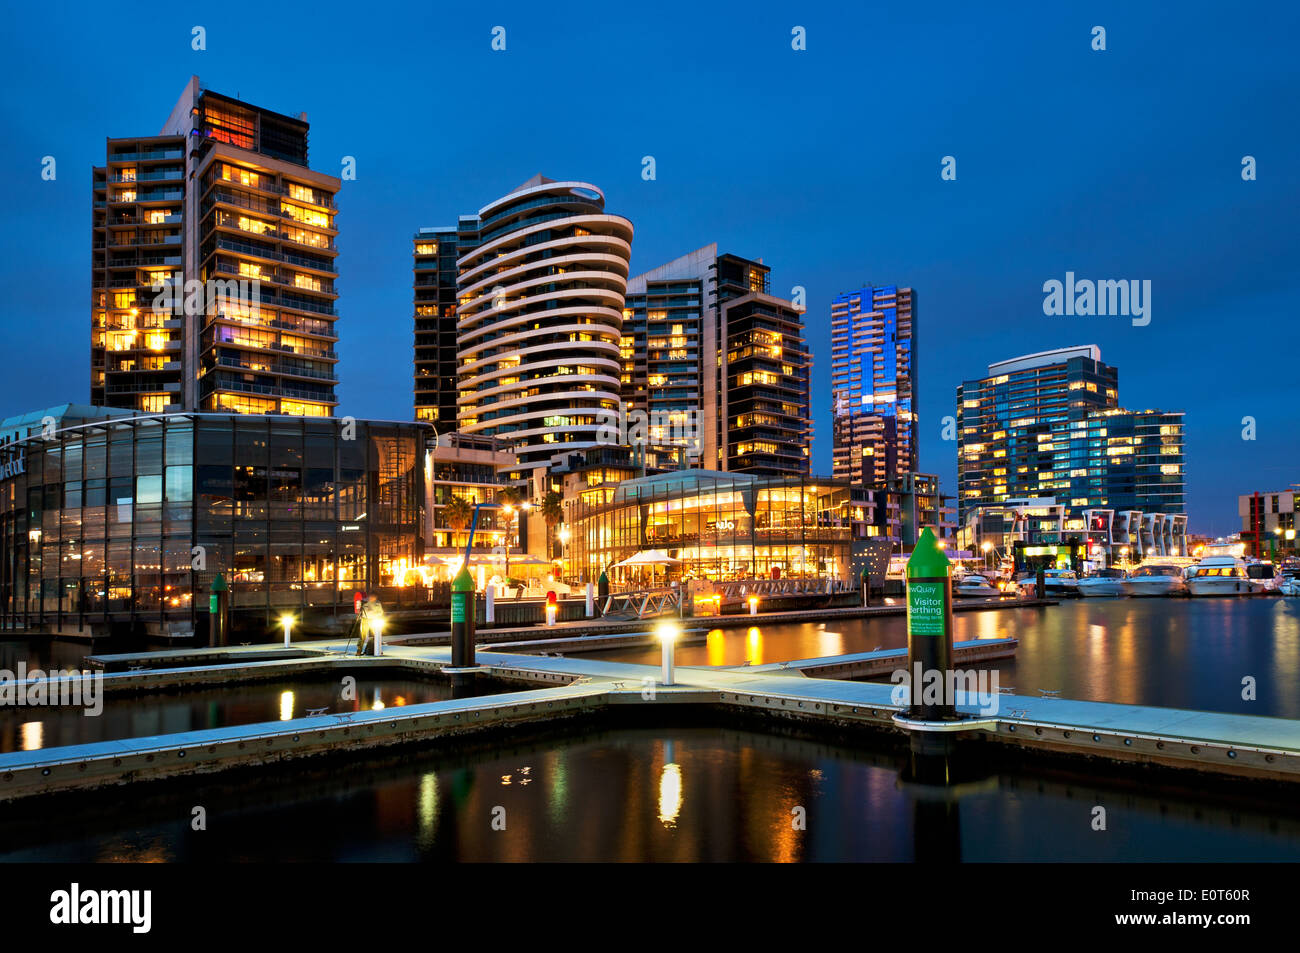 Melbourne Docklands at night. - Stock Image